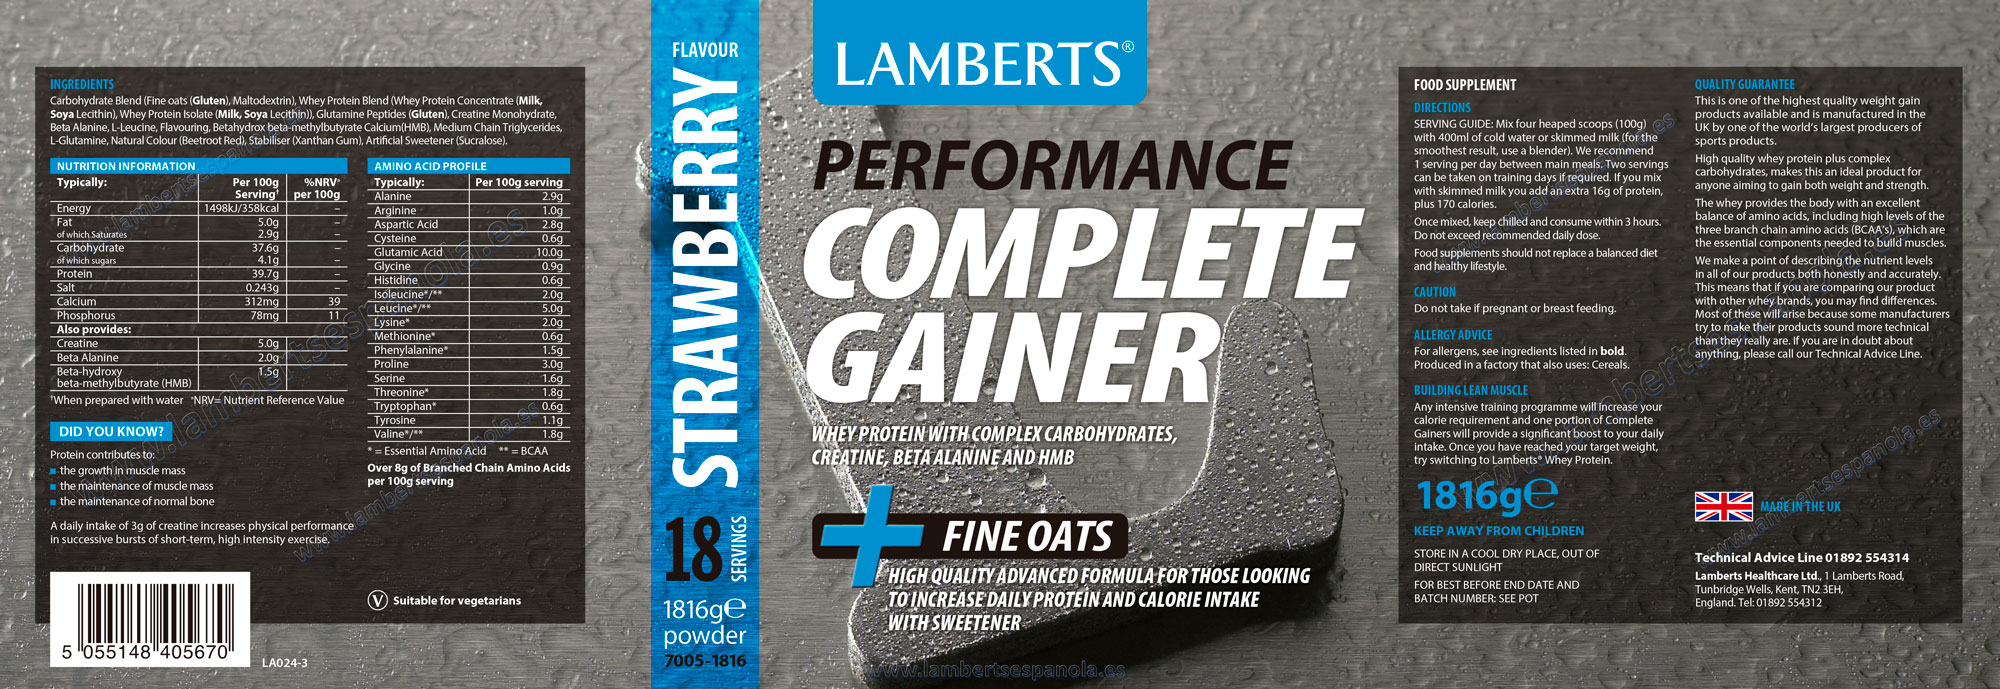 Lamberts Complete Gainer Strawerry Flavour- Product Label